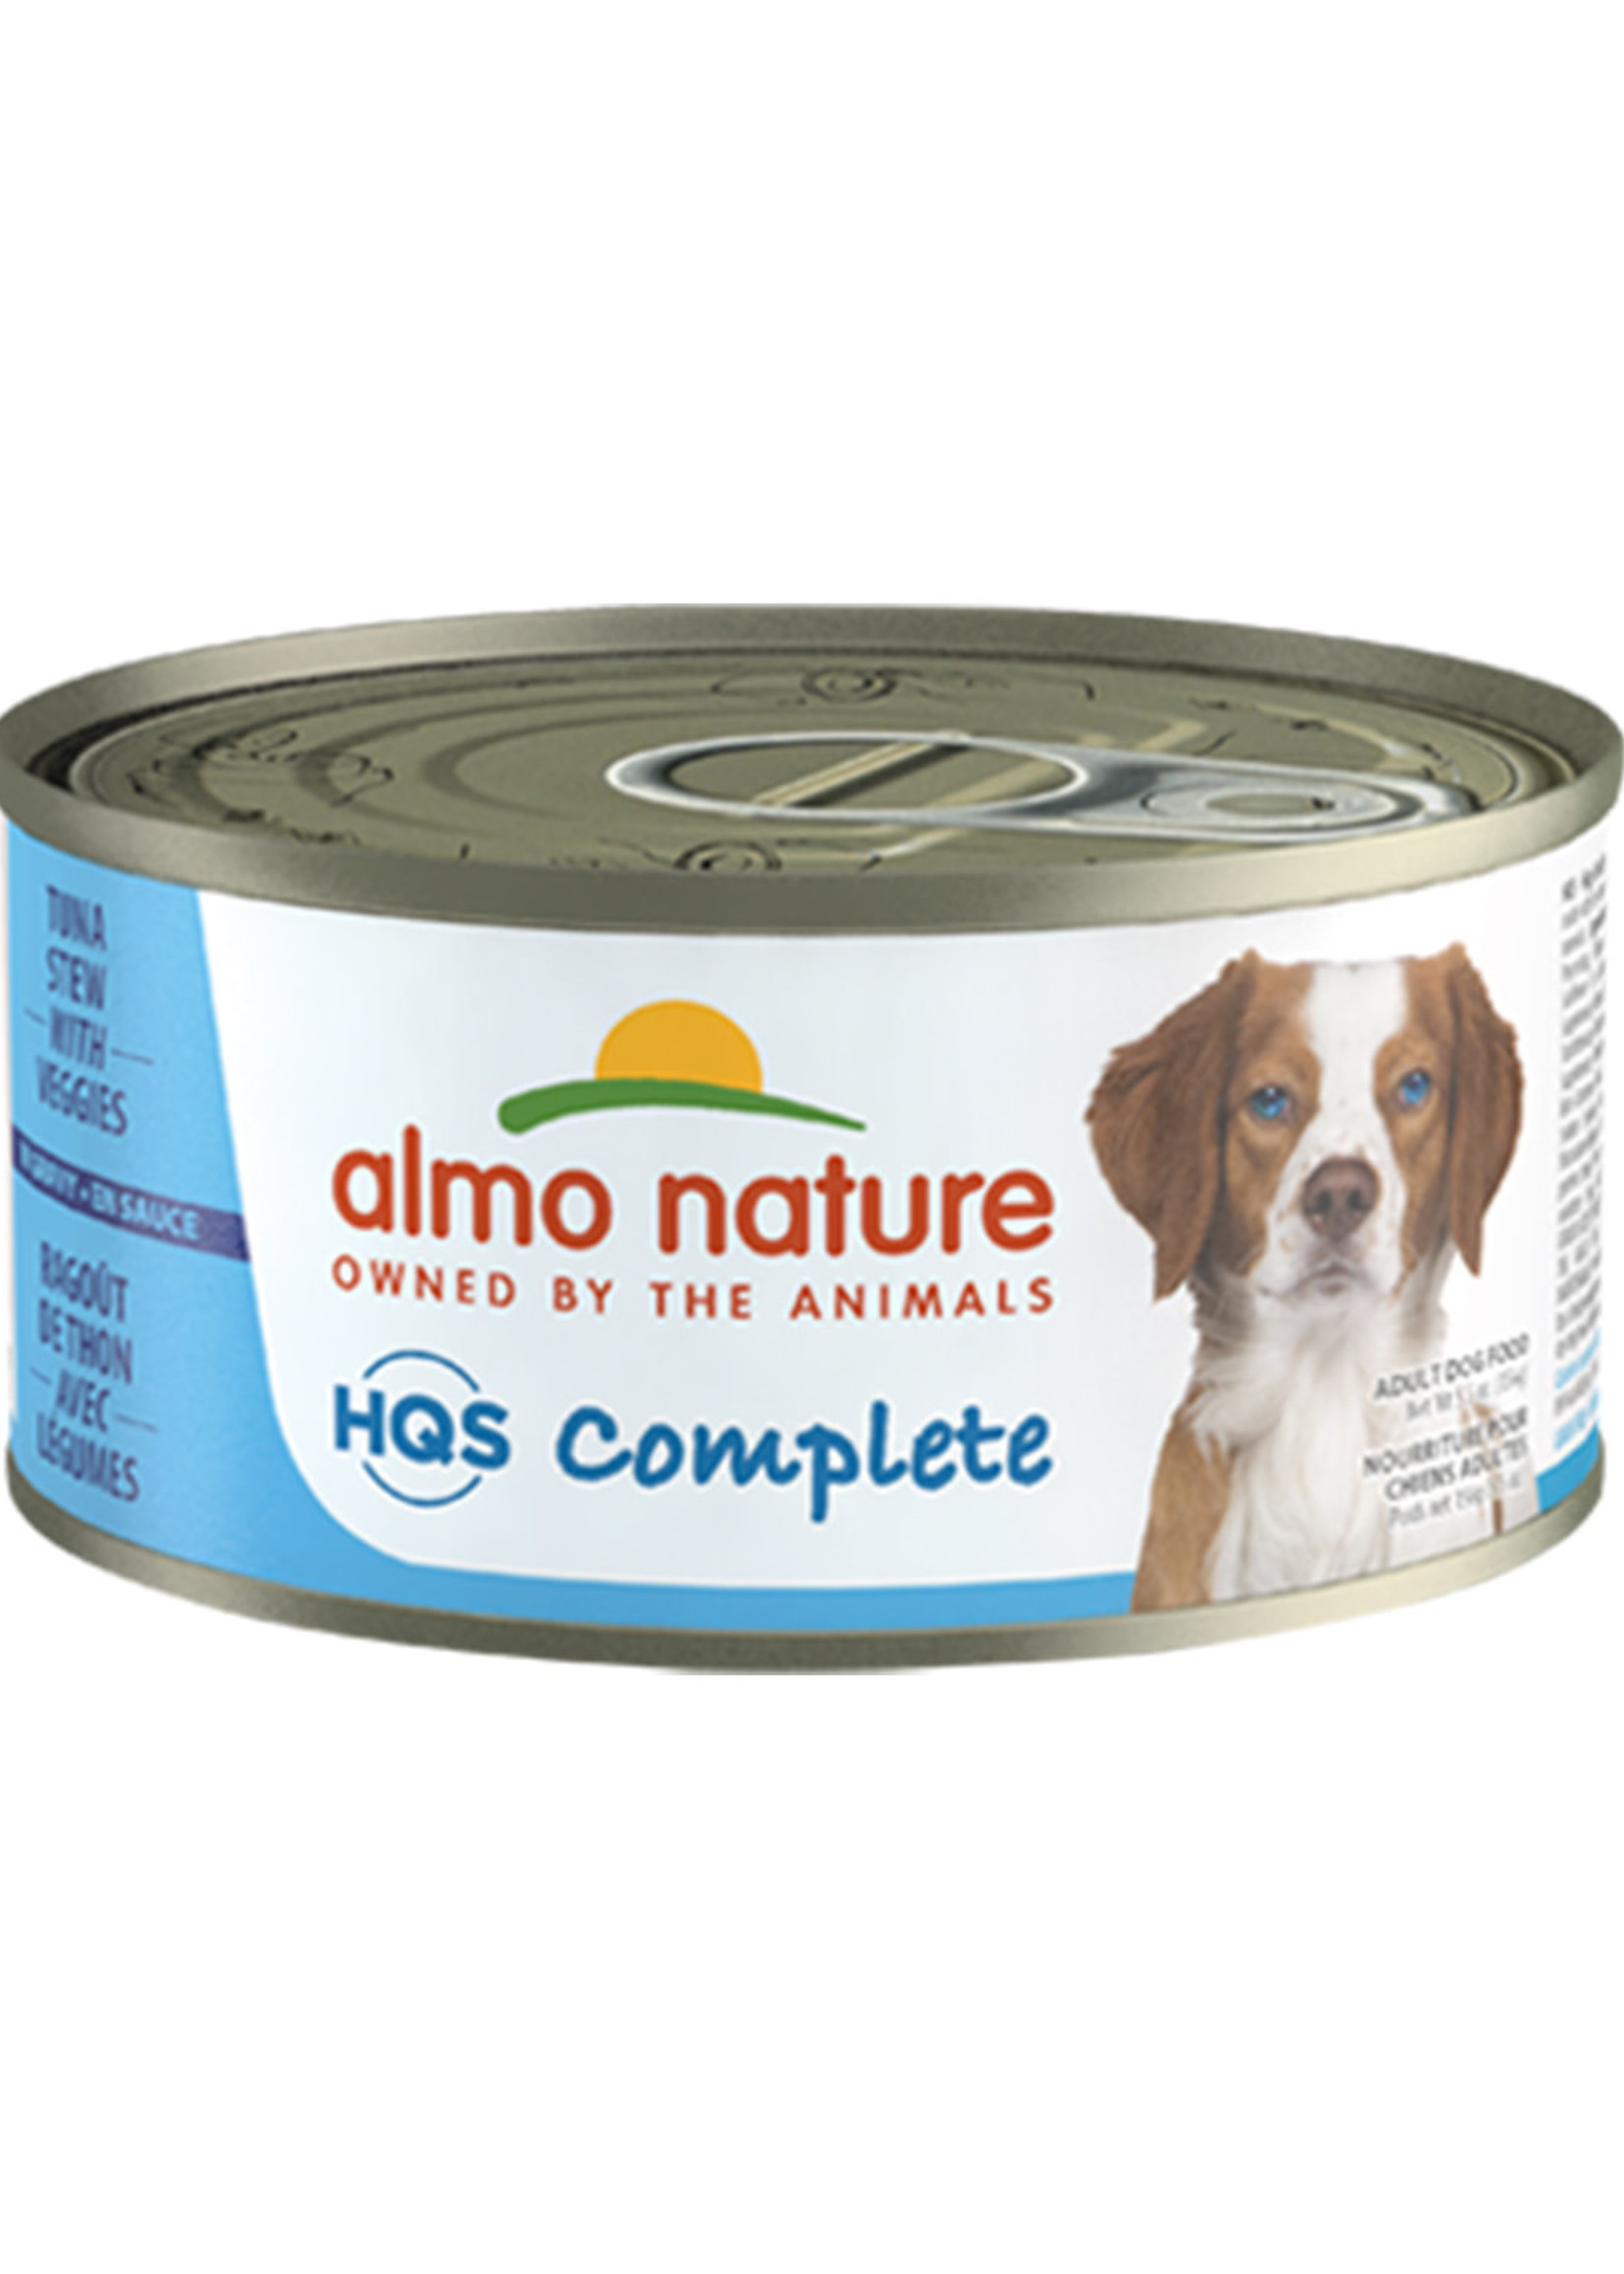 Almo Nature© Almo Nature HQS Complete Tuna Stew with Veggies 156g